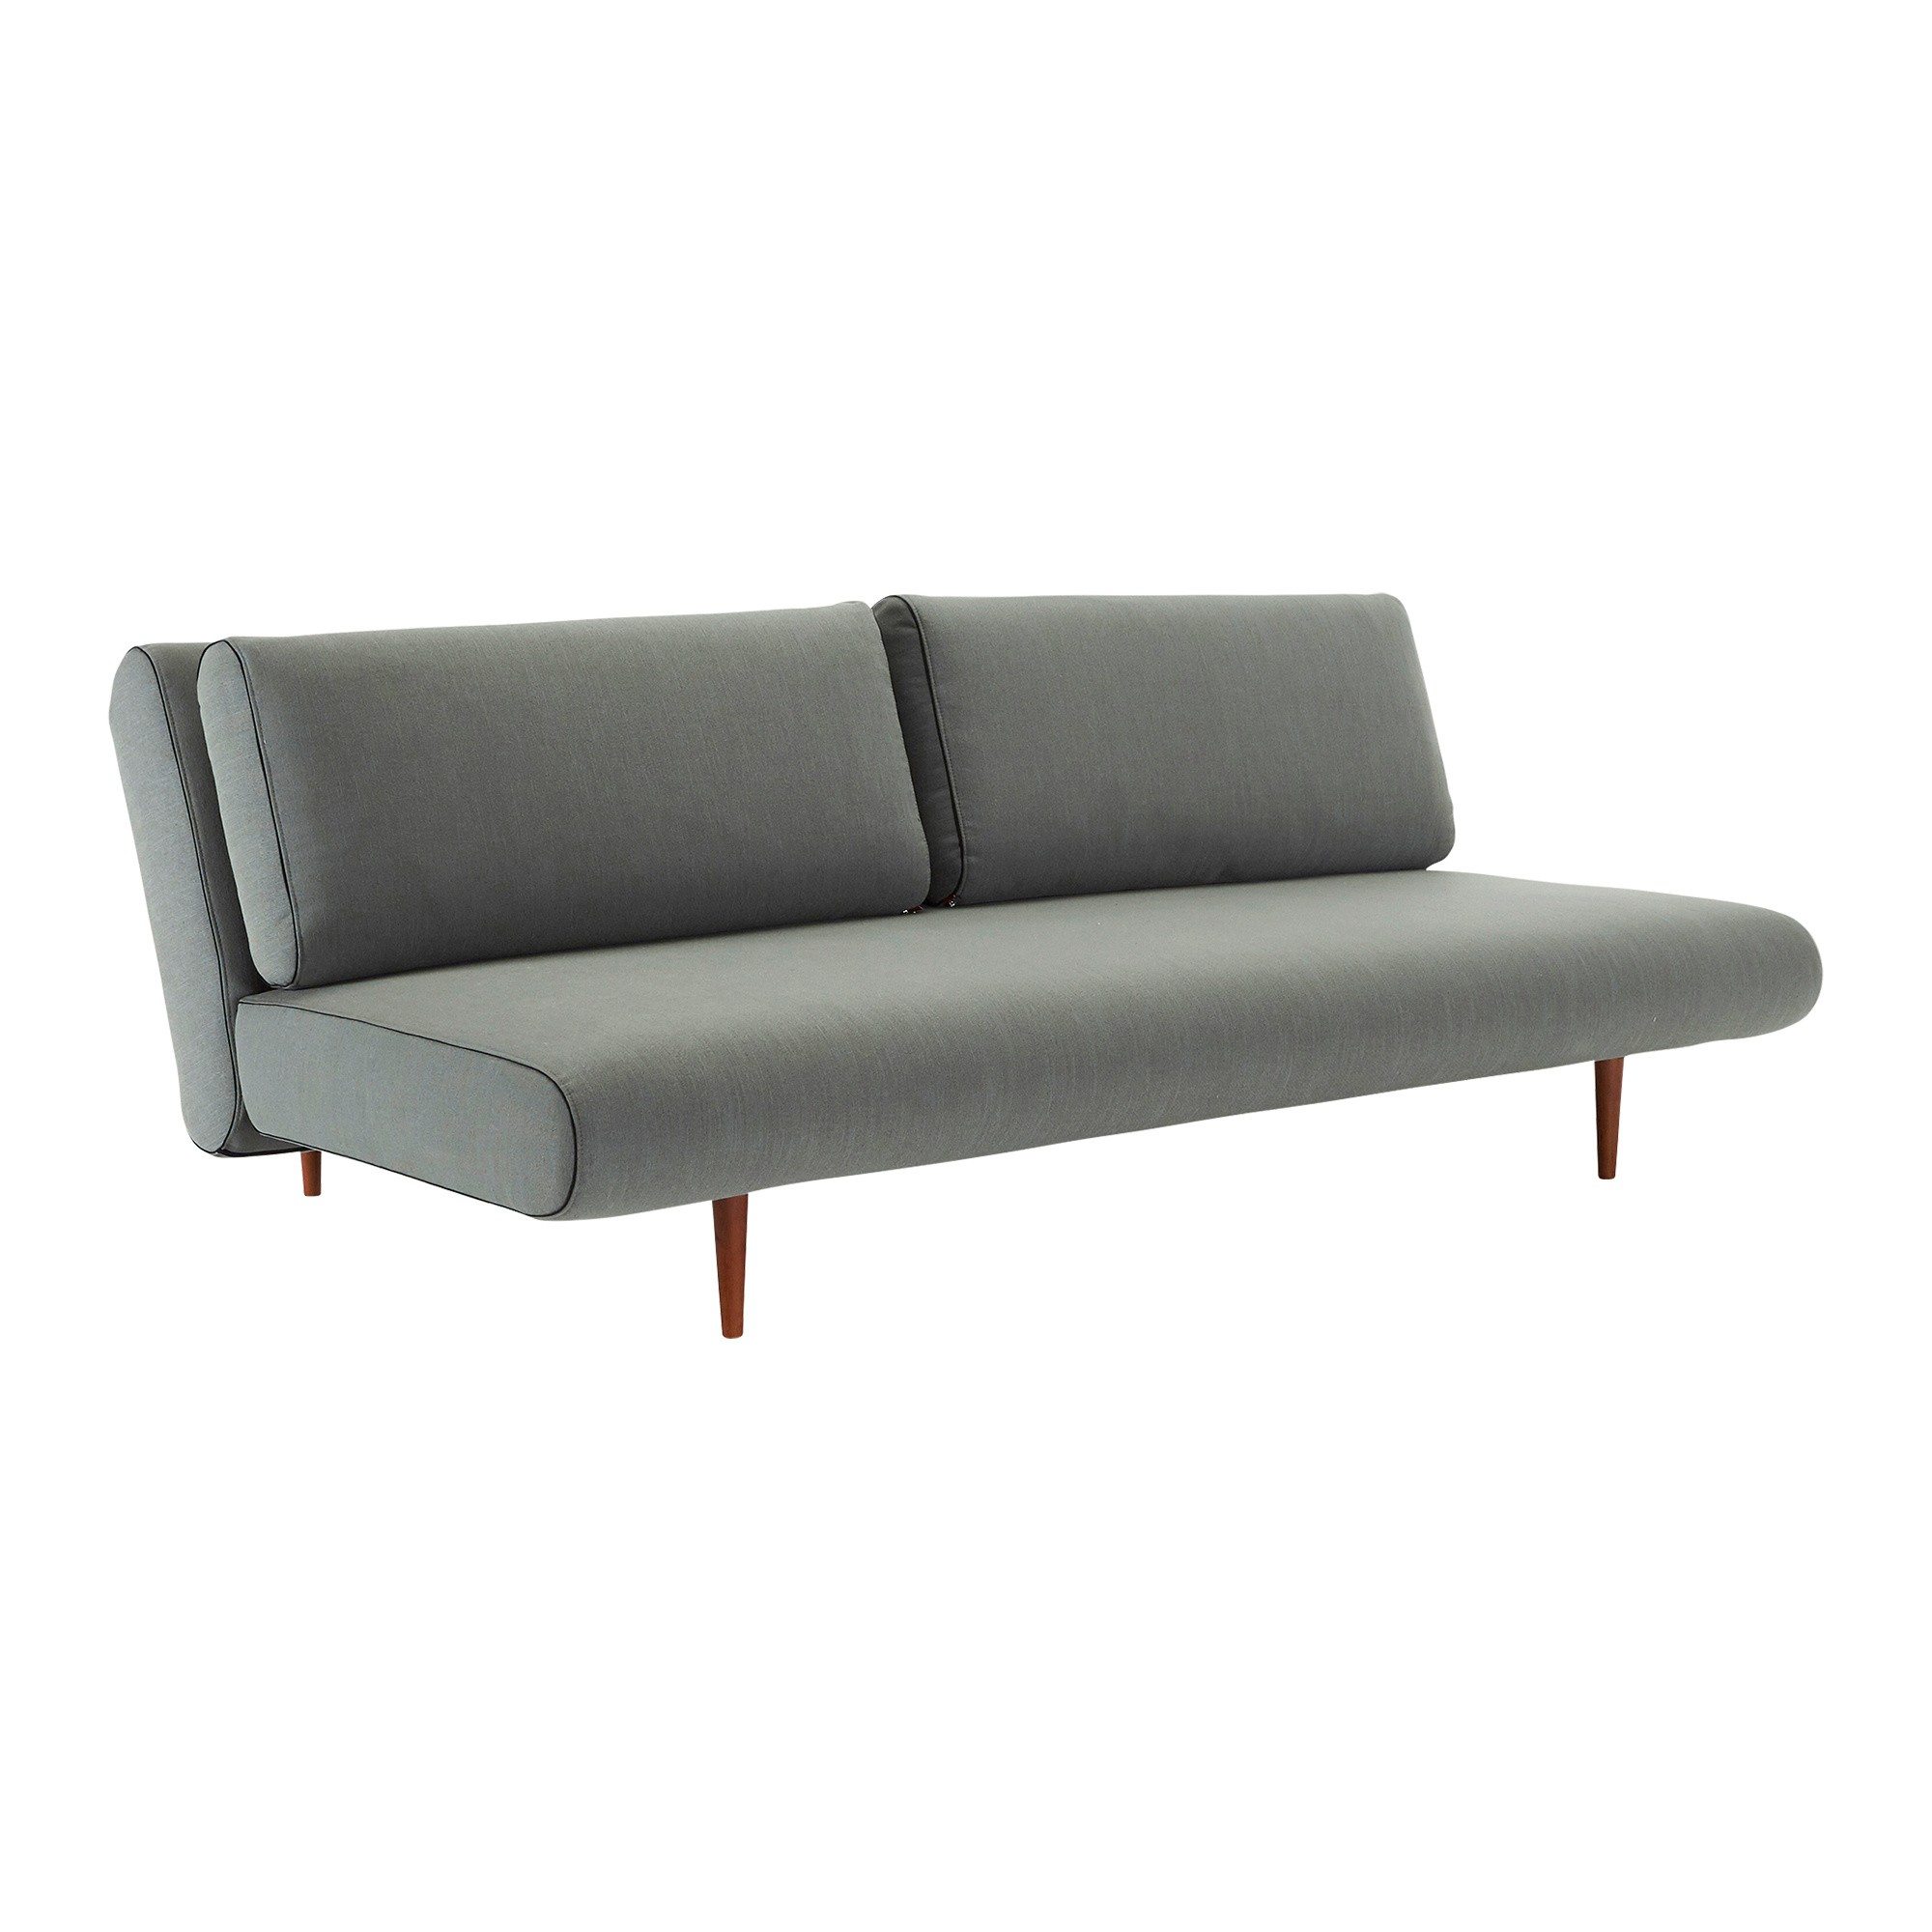 Innovation Unfurl Lounger Sofa Bed 200x121cm Ambientedirect